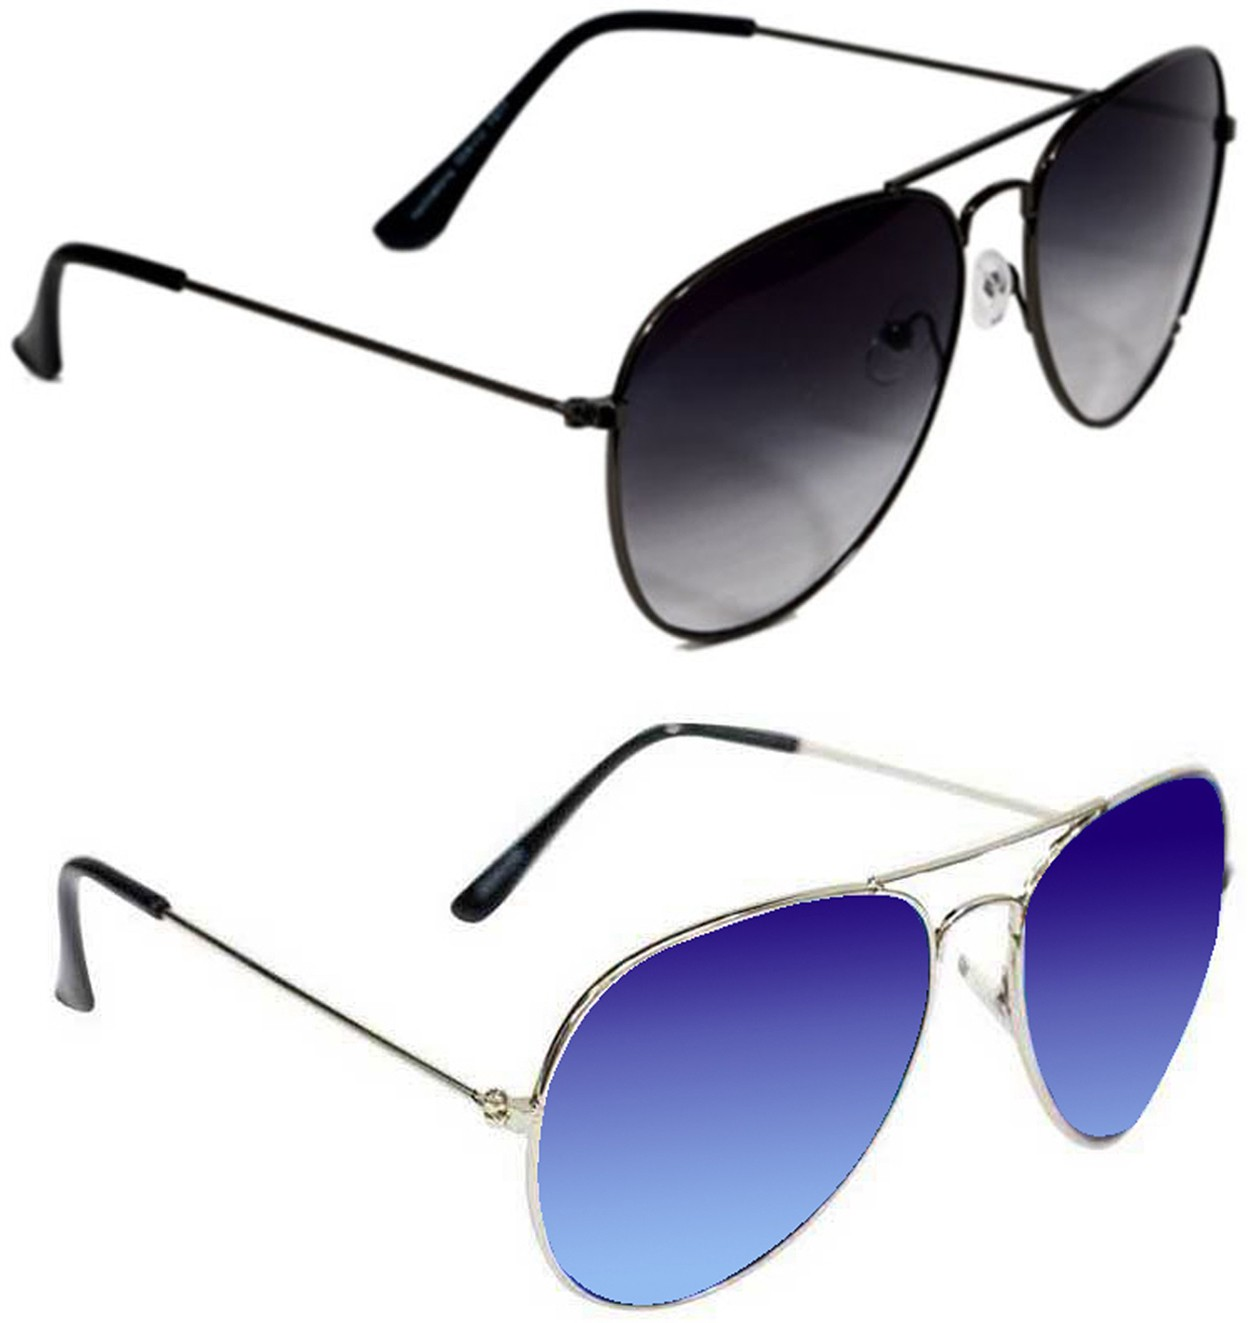 Deals | Abster & More Sunglasses